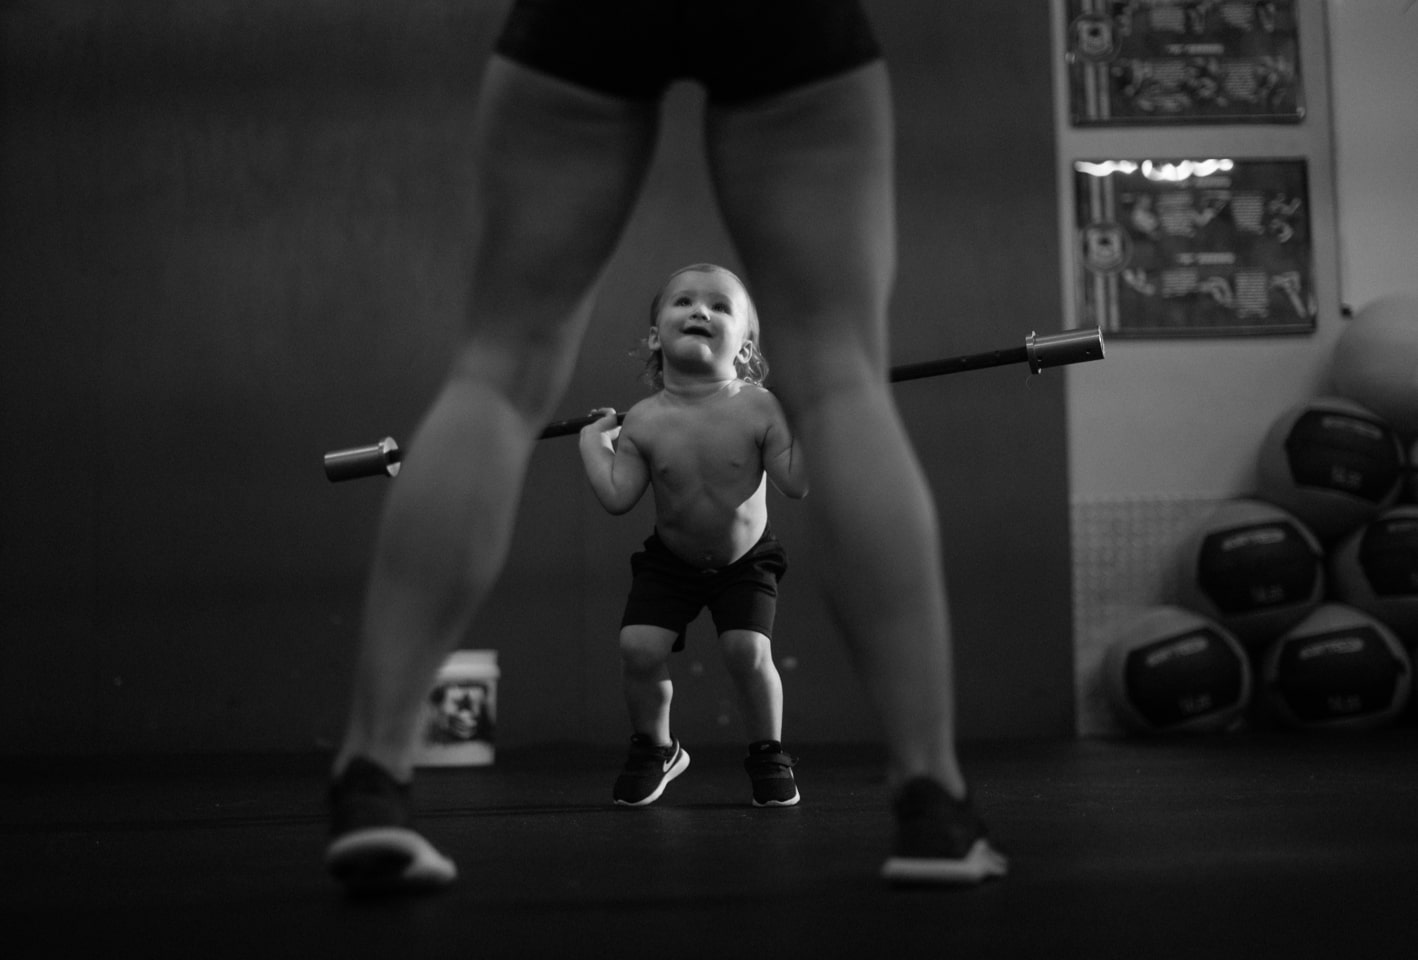 Boy child admiring mom doing barbell squats